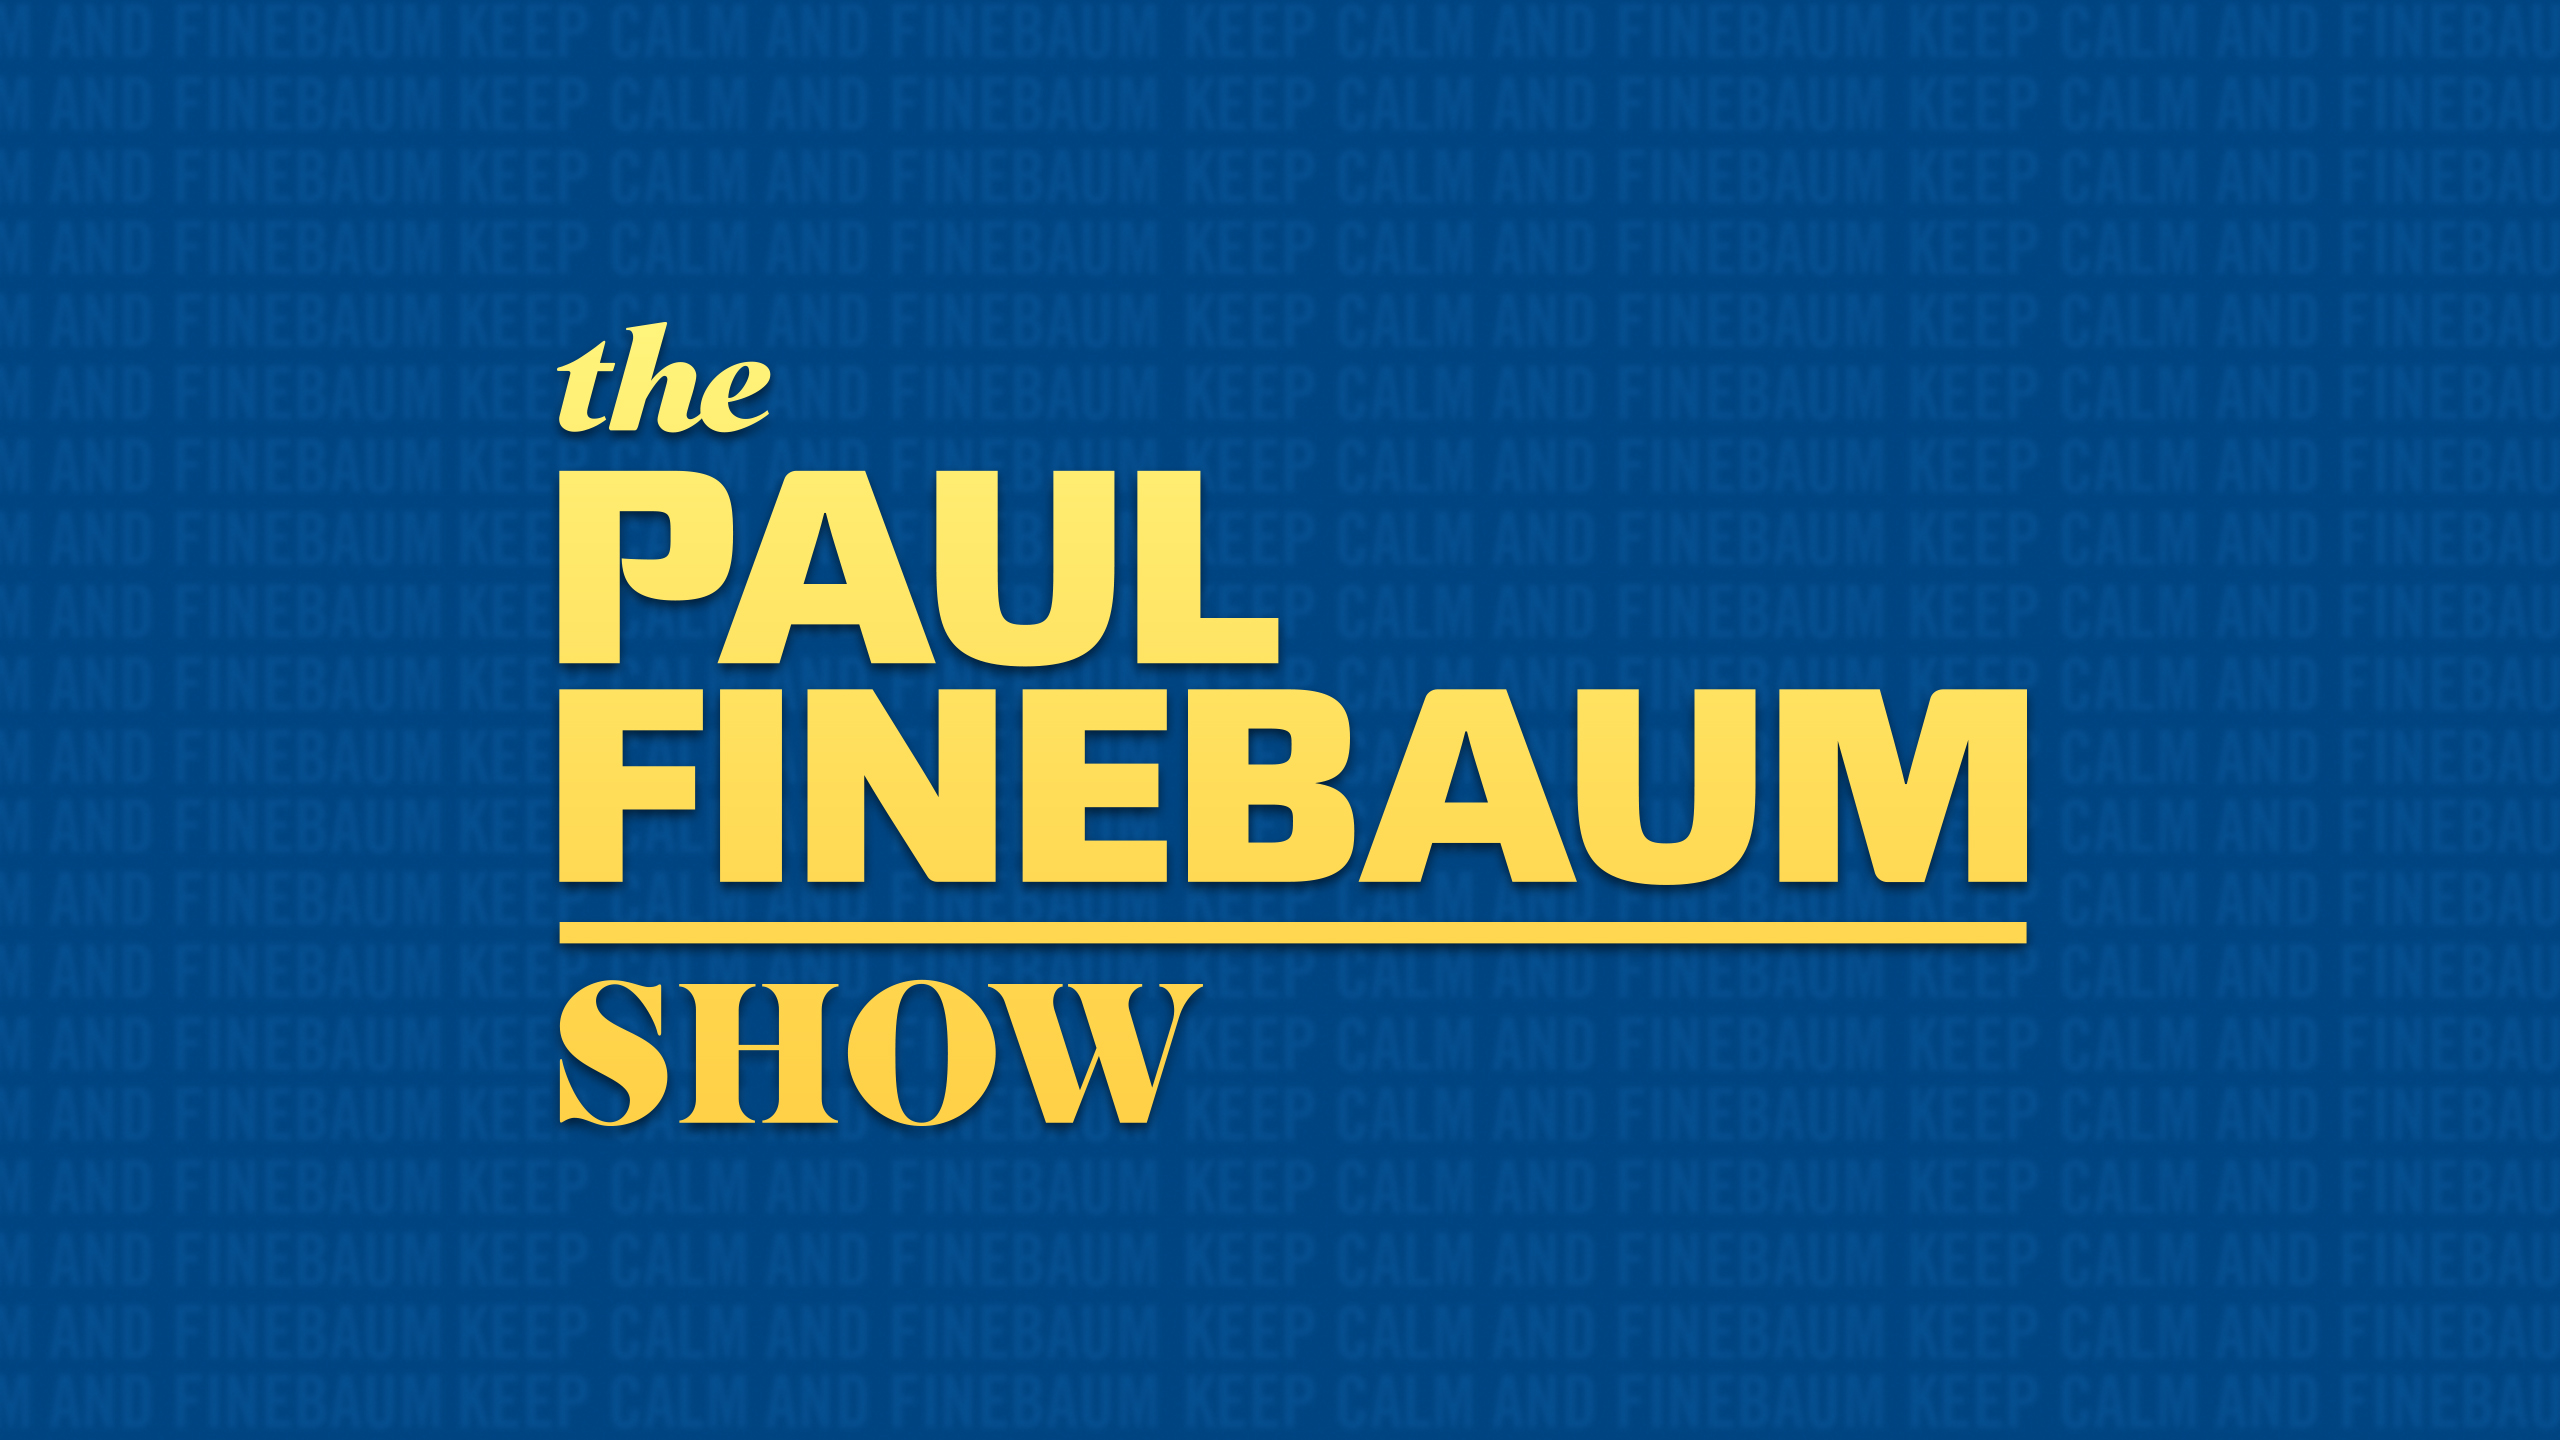 Fri, 11/16 - The Paul Finebaum Show Presented by Johnsonville